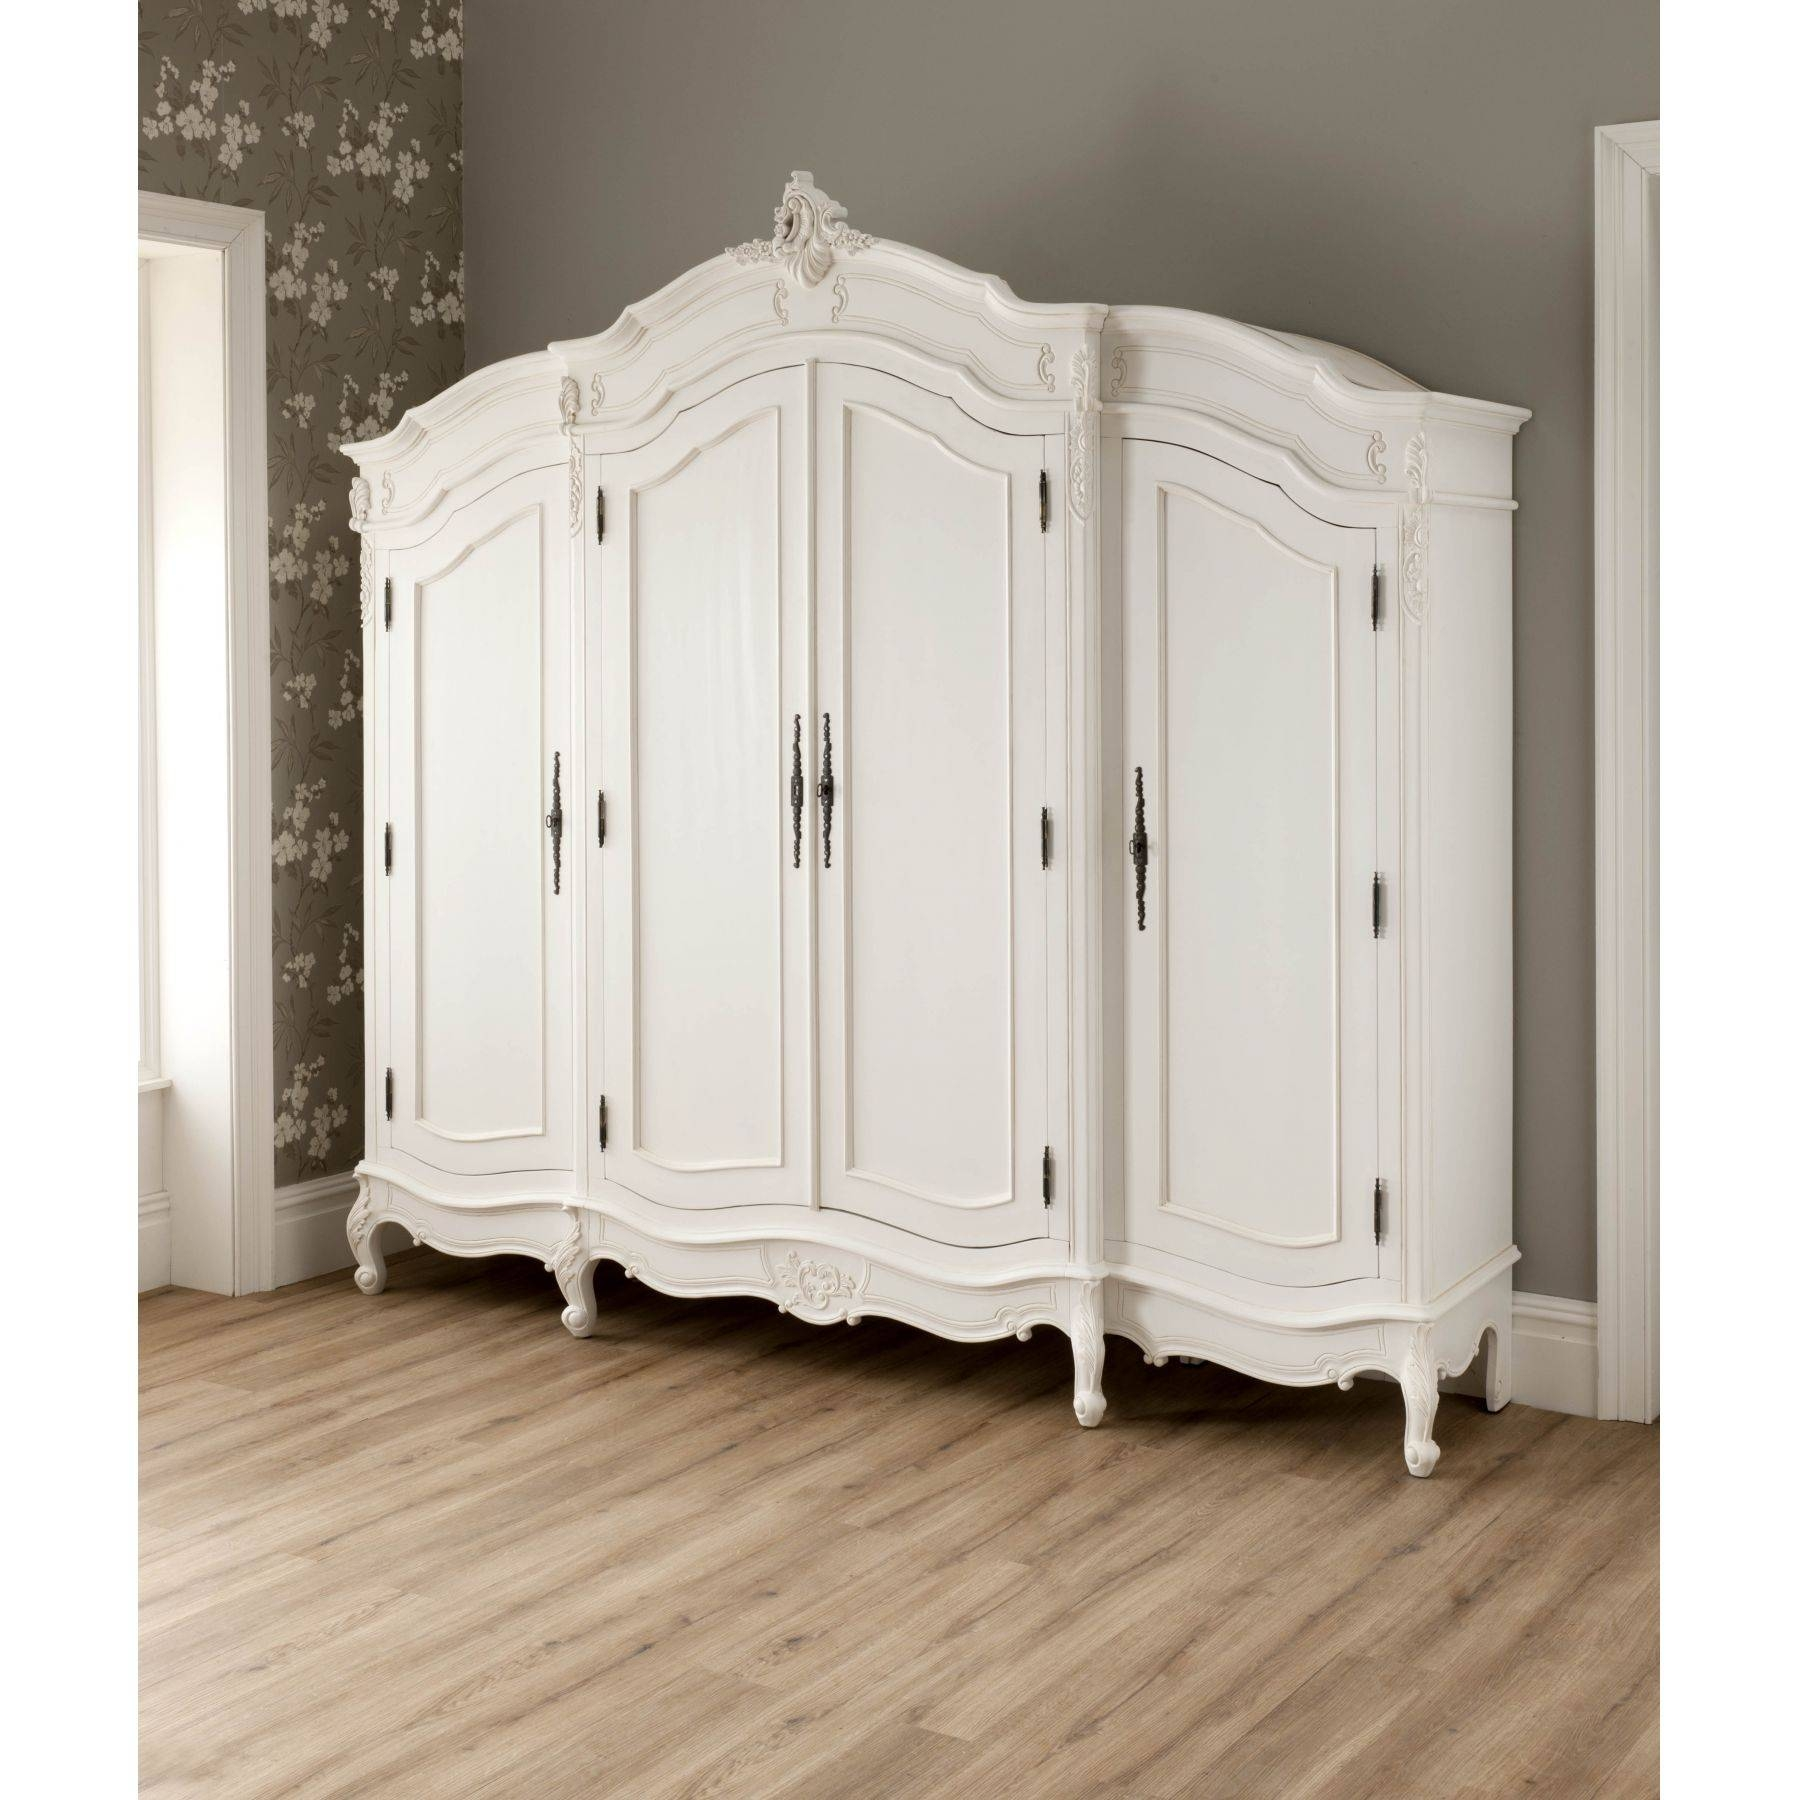 La Rochelle Antique French Wardrobe Working Well Alongside Our with regard to White French Style Wardrobes (Image 8 of 15)